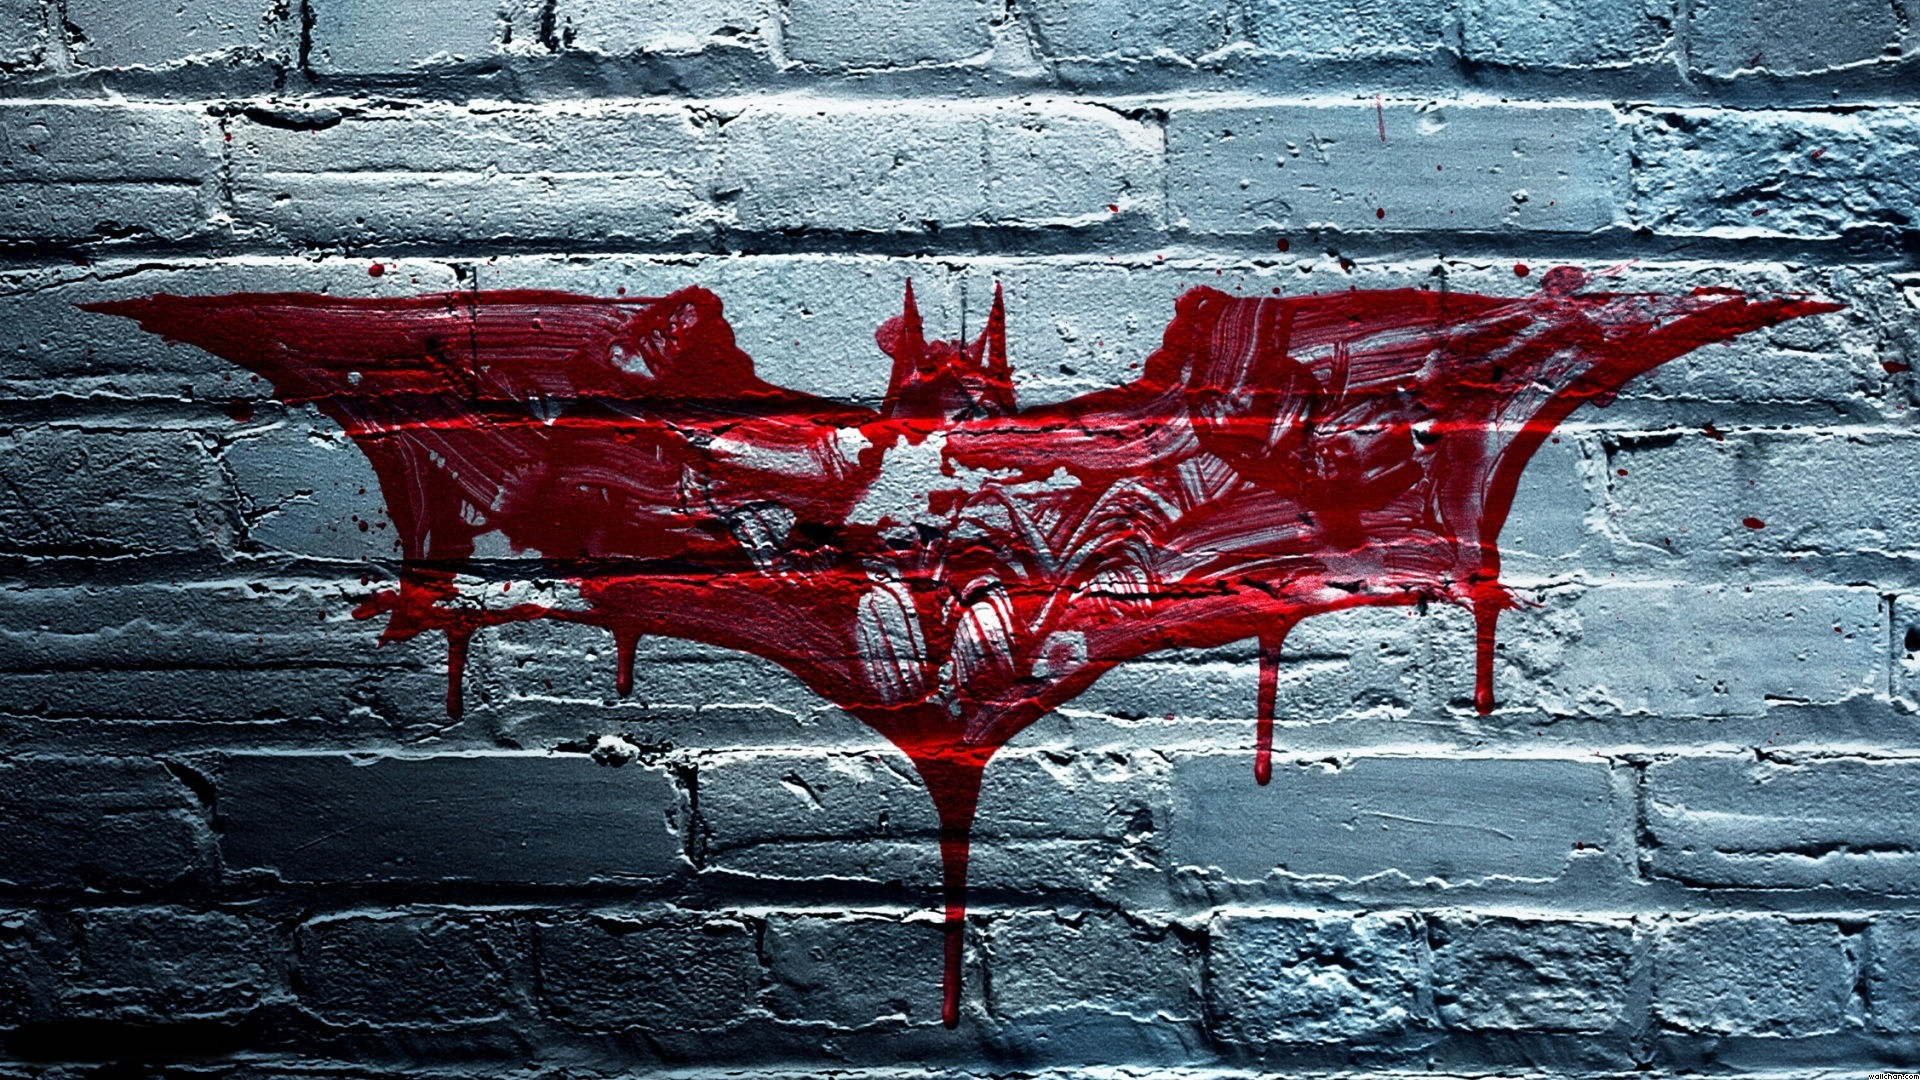 Bat painting Made Using Blood - Top 10 HD Batman Movie Desktop Wallpapers